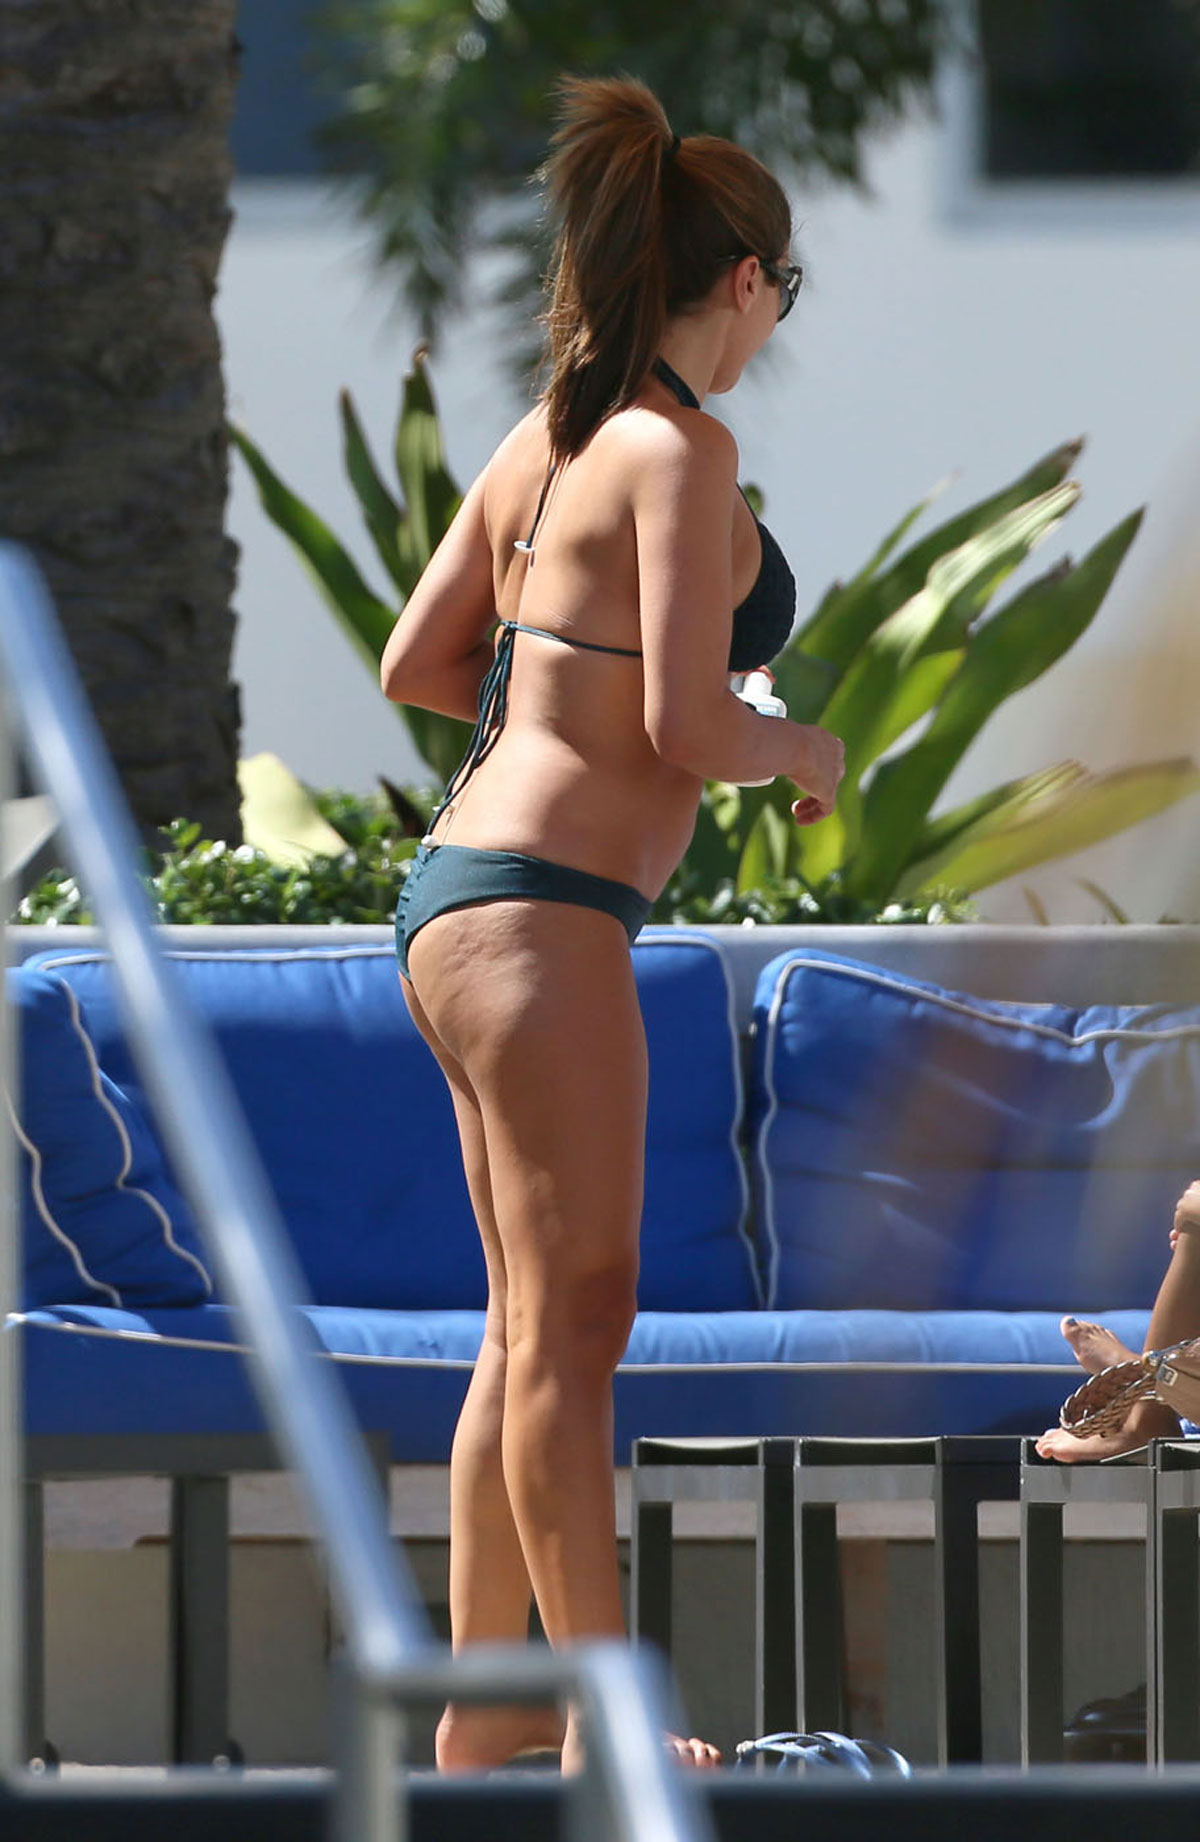 Larsa Pippen Bikini Candids at a Pool in Miami